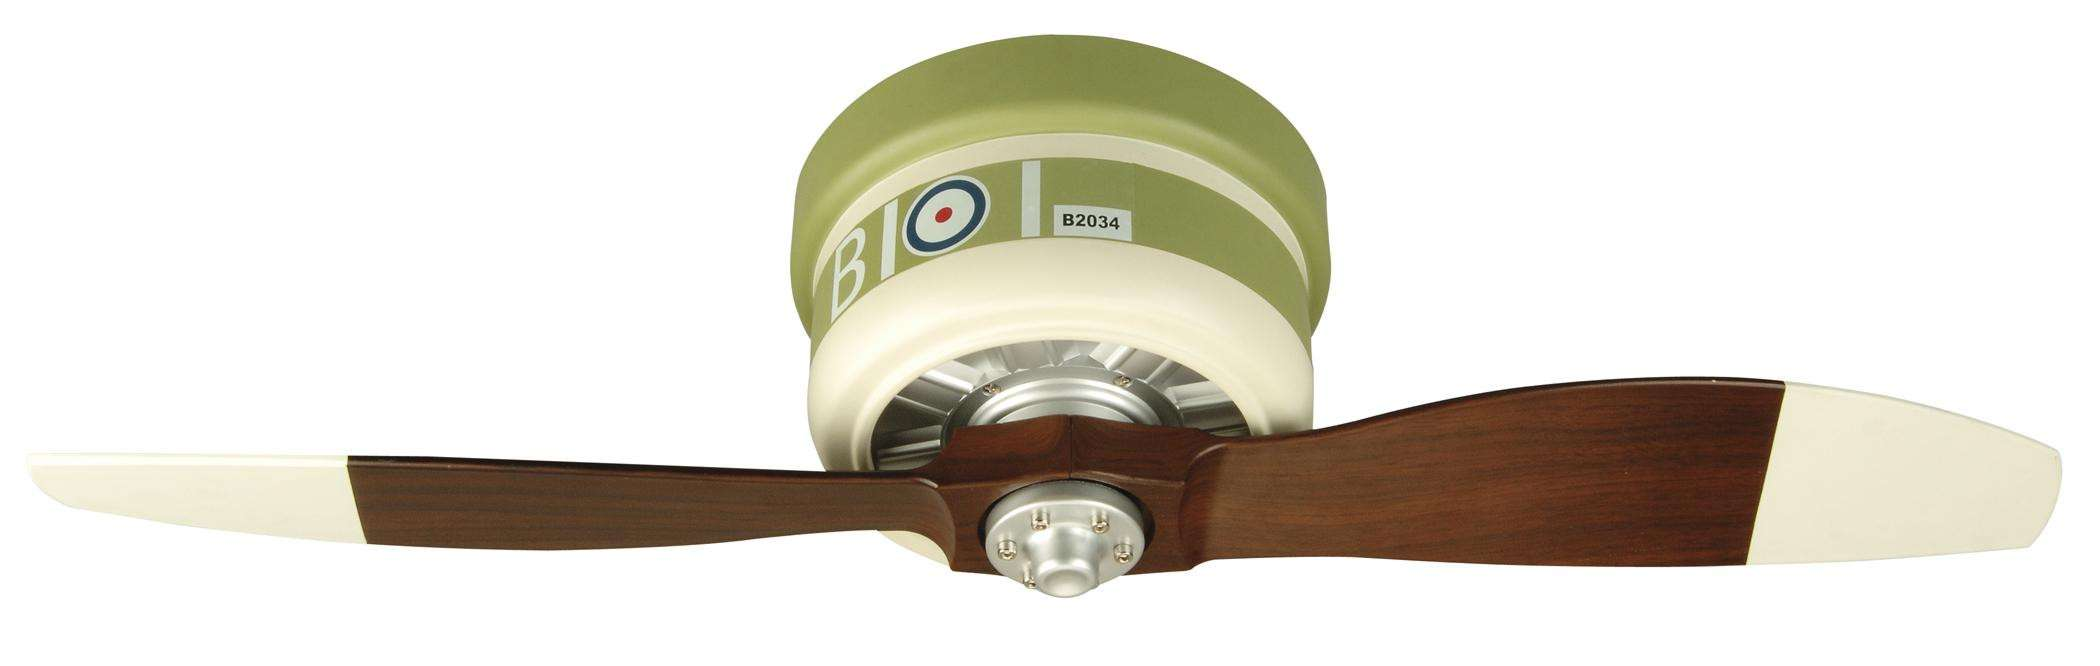 Craftmade WarPlanes Sopwith Camel in Green and Almond